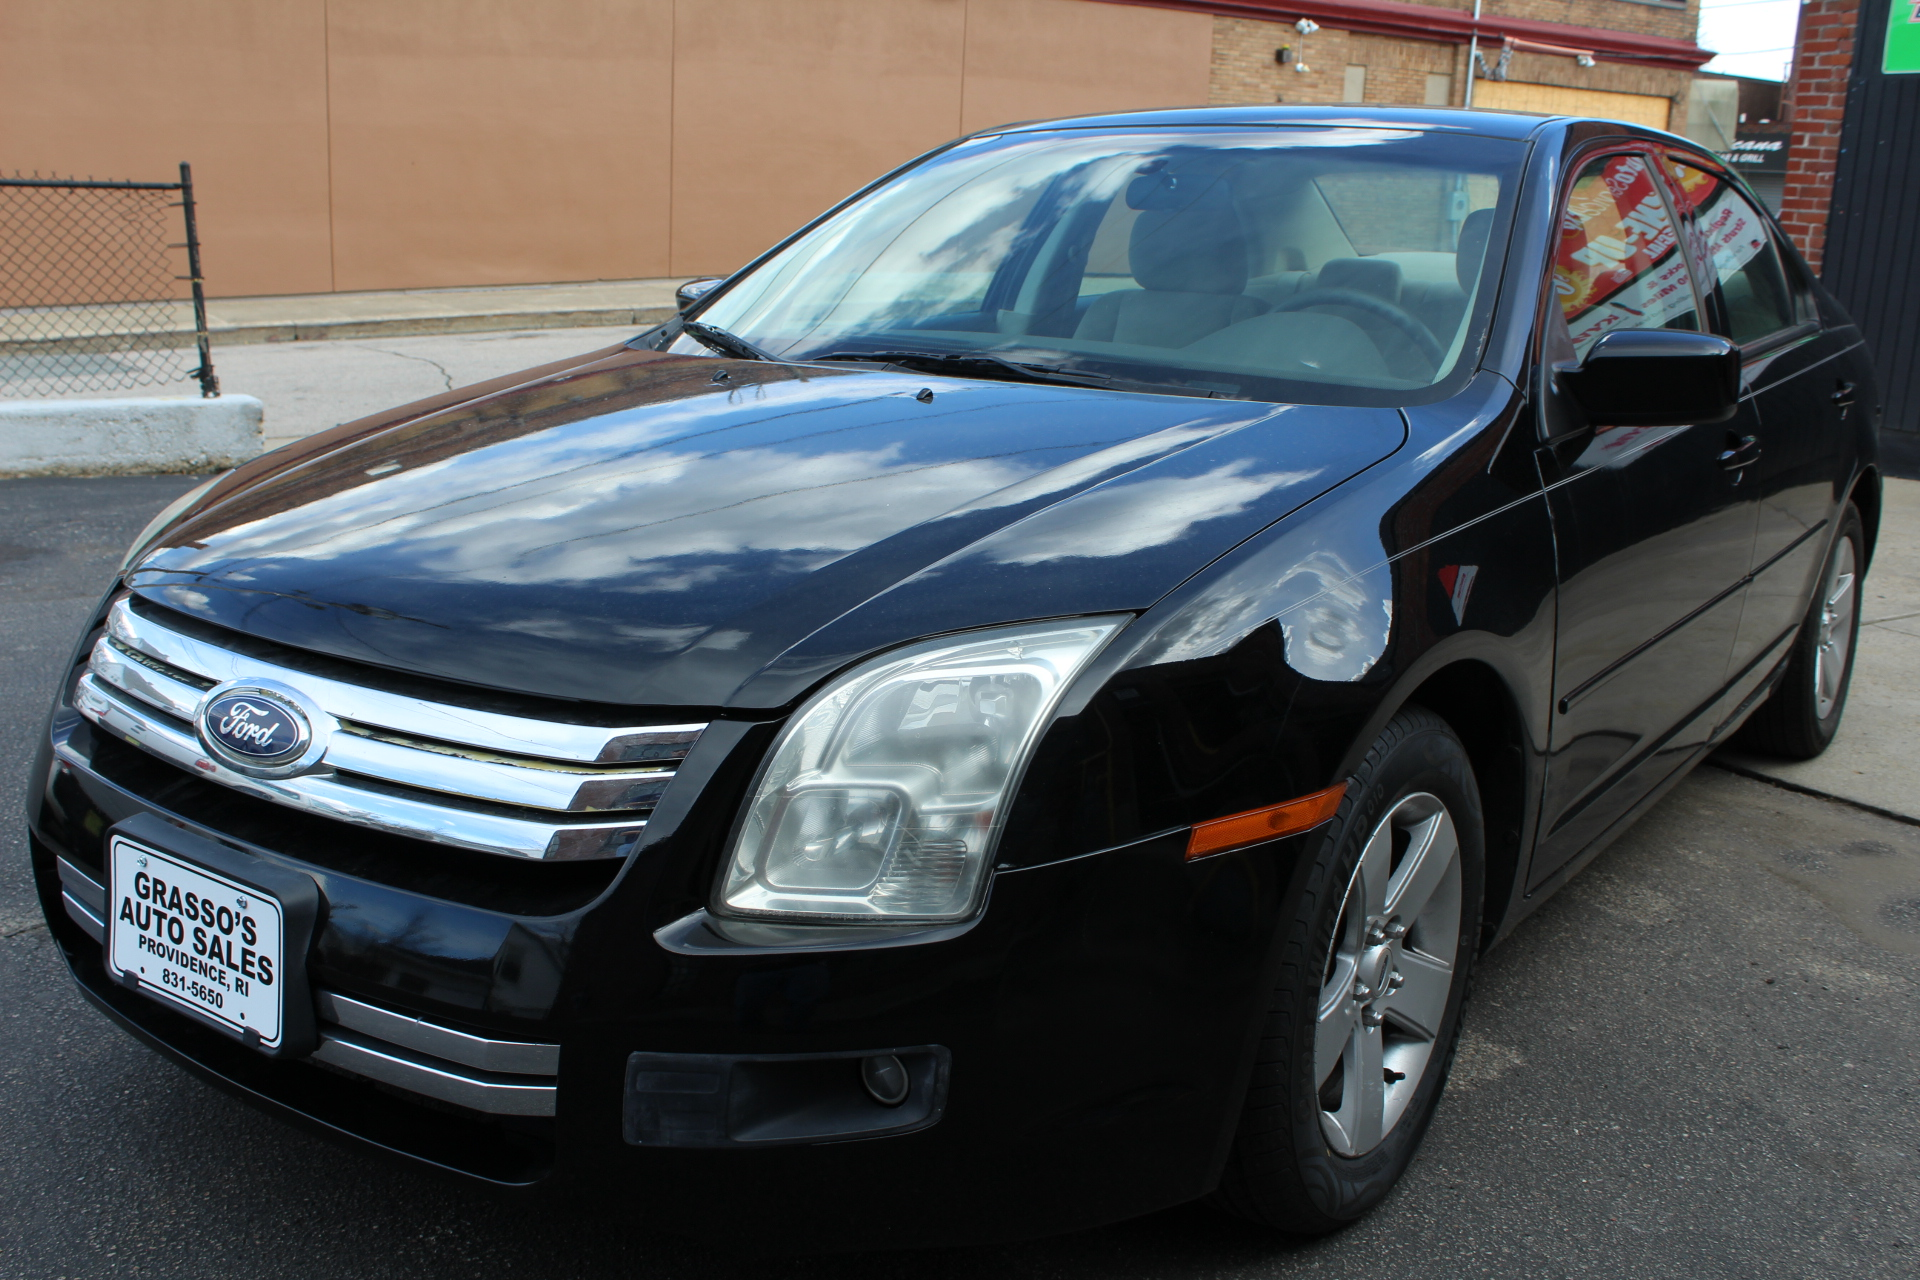 2006 Ford Fusion  NON SMOKER  COMPLETELY SERVICED WITH A 2 YEAR RHODE ISLAND STATE INSPECTION STI